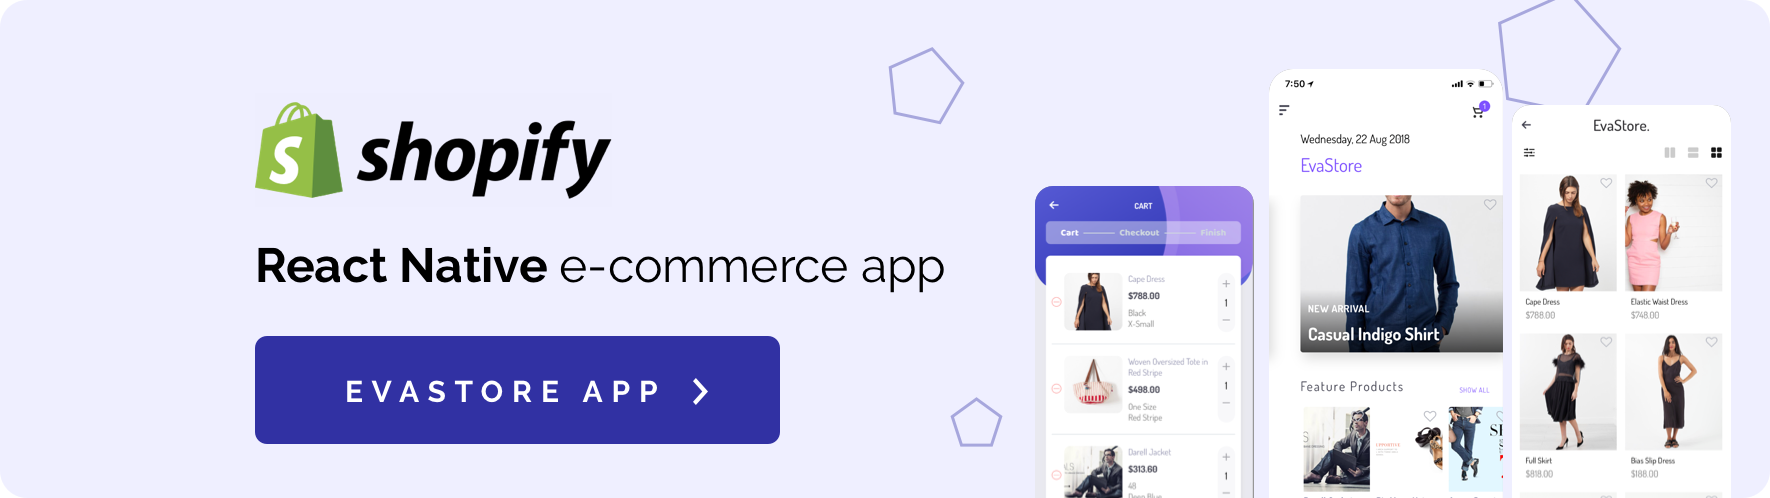 CeStore - ReactJS web app & React Native mobile app for e-commerce - 20